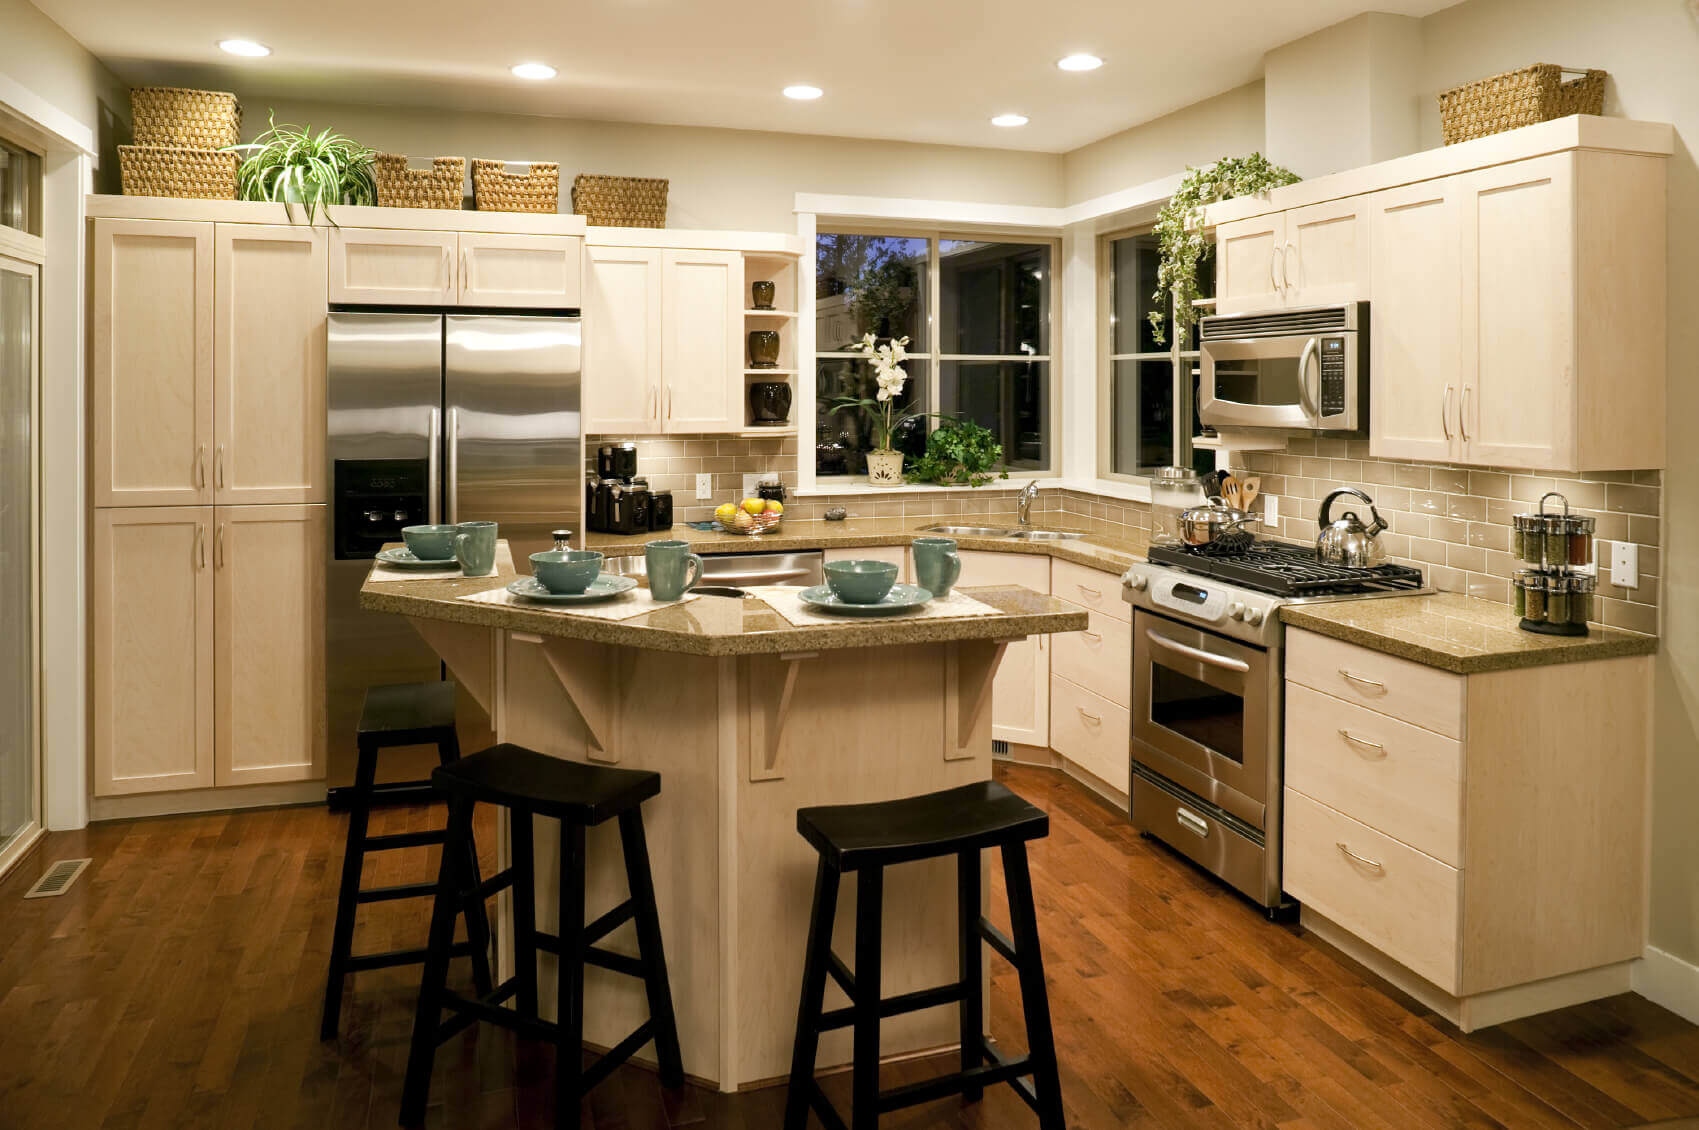 The kitchen island in this small kitchen design with island was designed to include a breakfast section that helps divide attention between the cooking area and the island. A line of beautiful barstools provides seating for friends, family, and guests